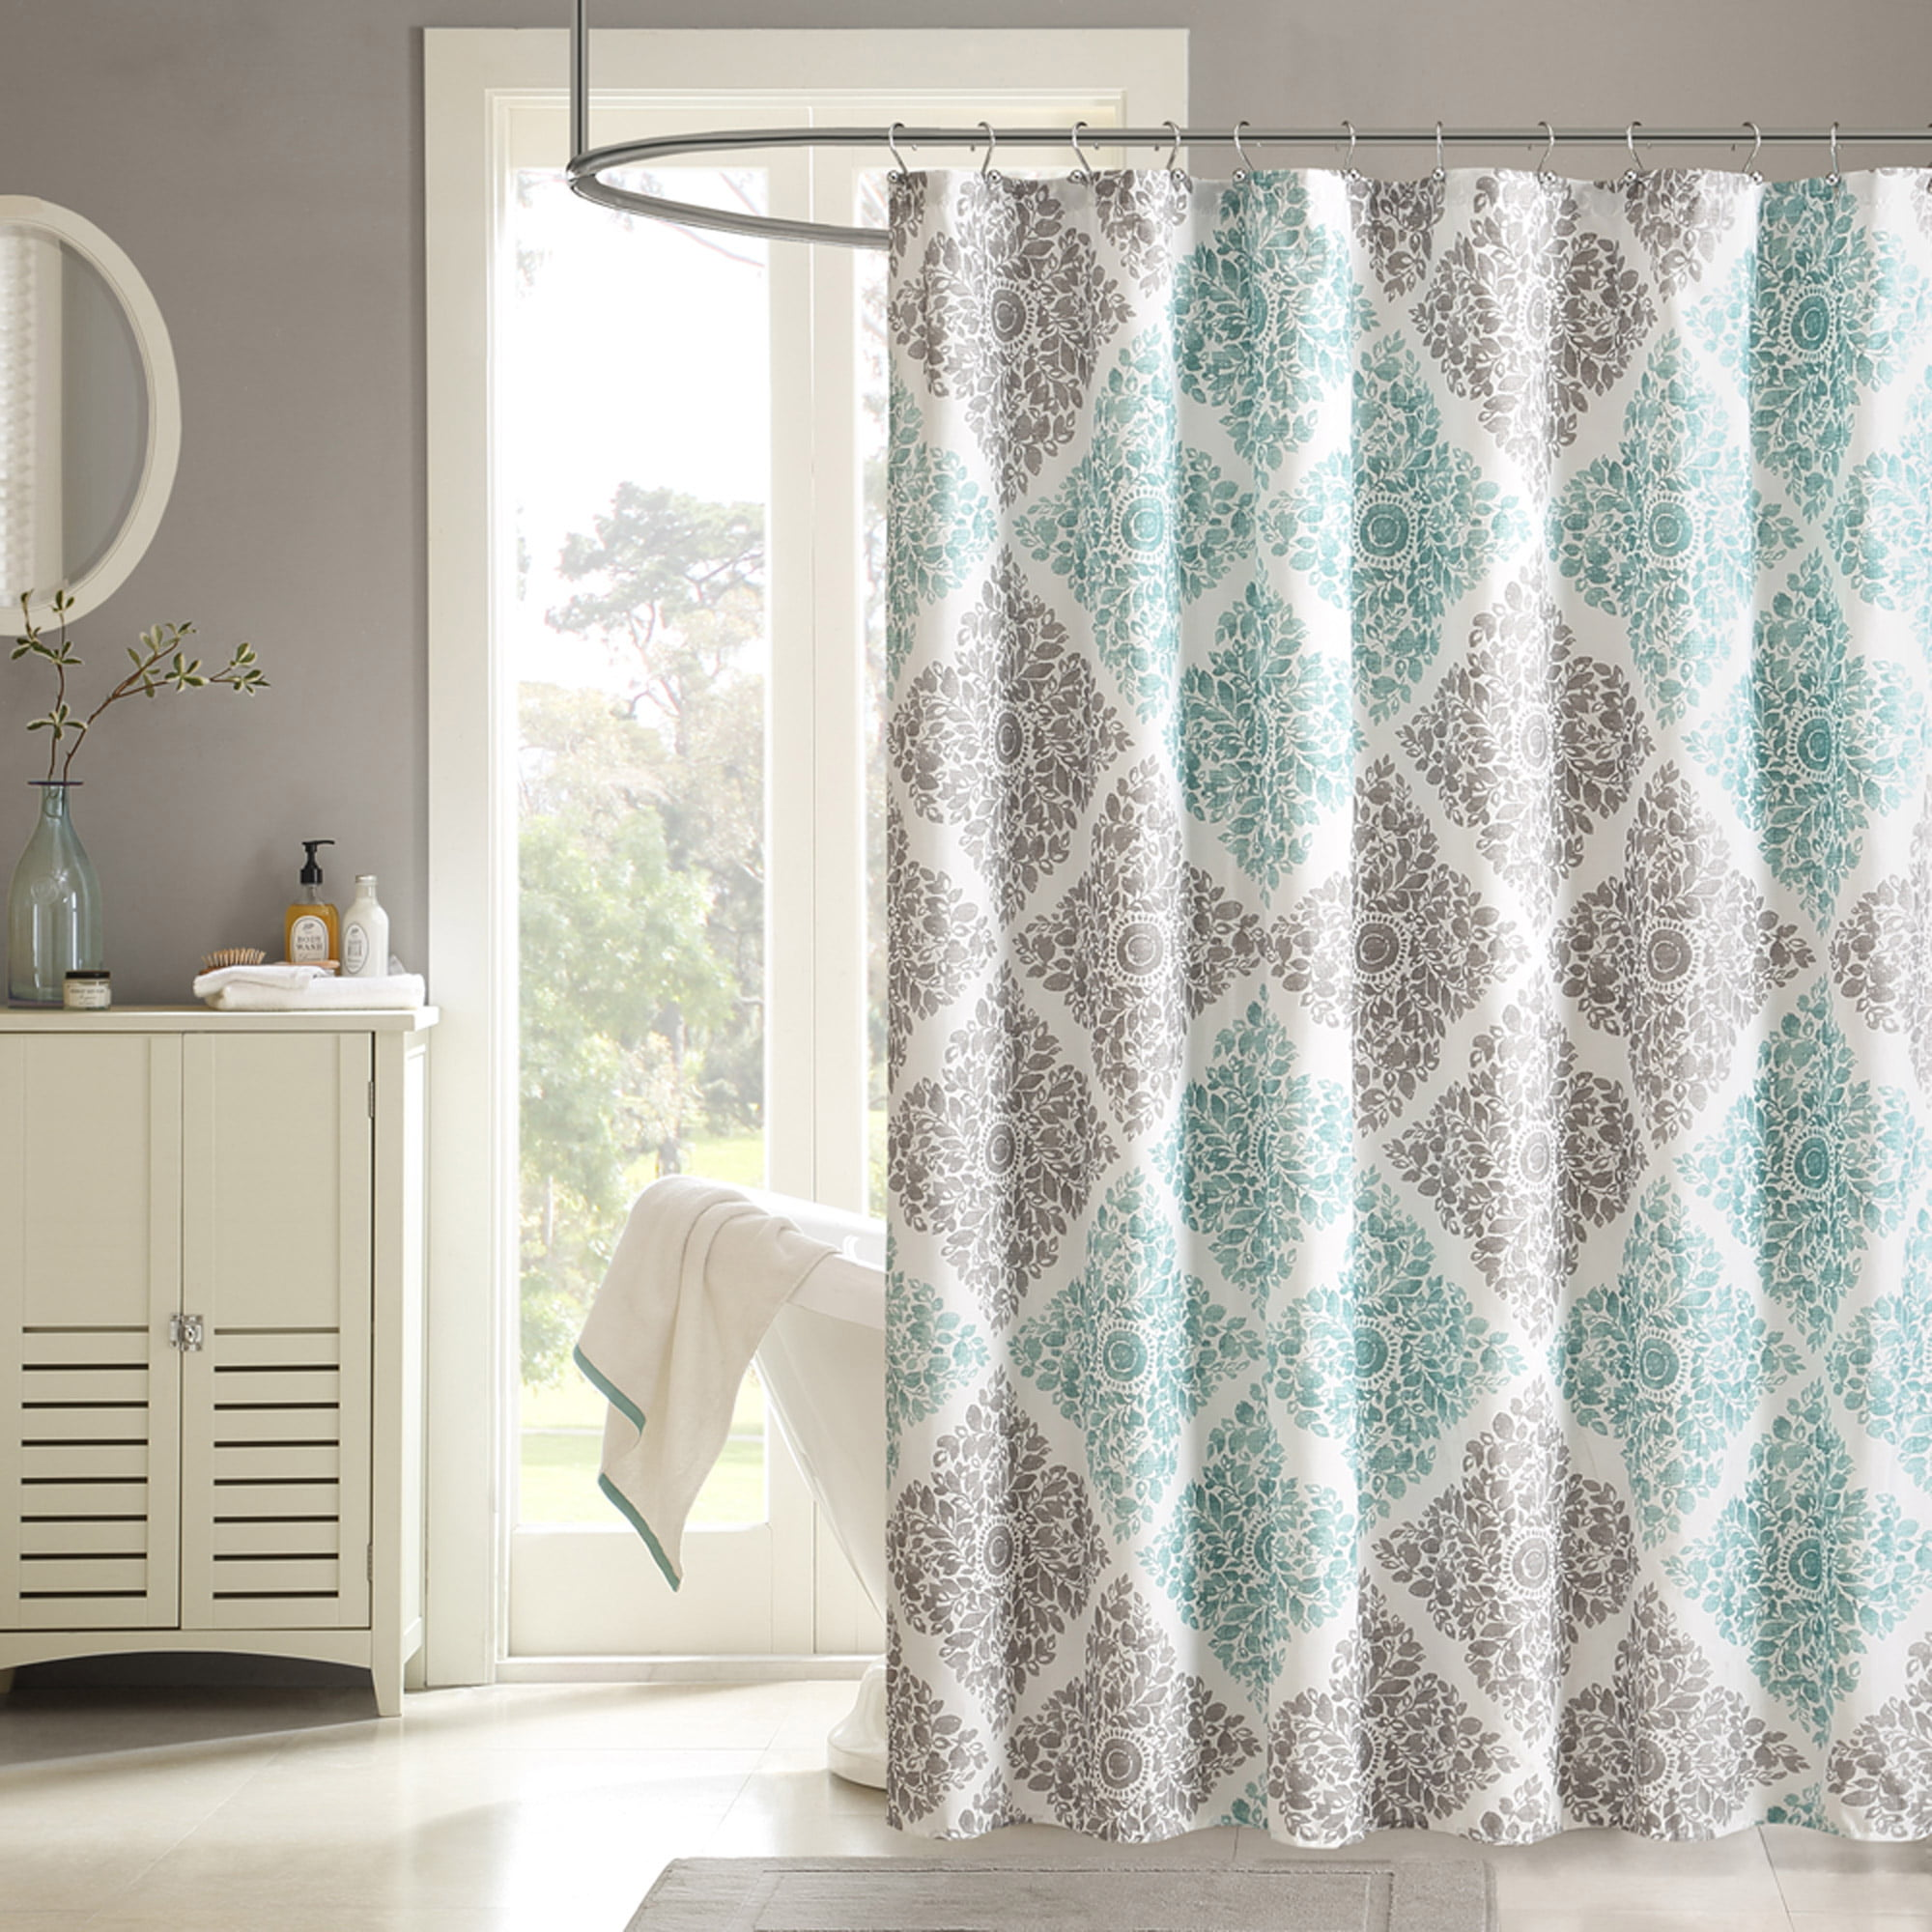 shower popular mid inspiration modern coffee cafe and of incredible excerpt room inspiring fancy curtains sxs lace picture drapes for music ideas century living chic curtain table